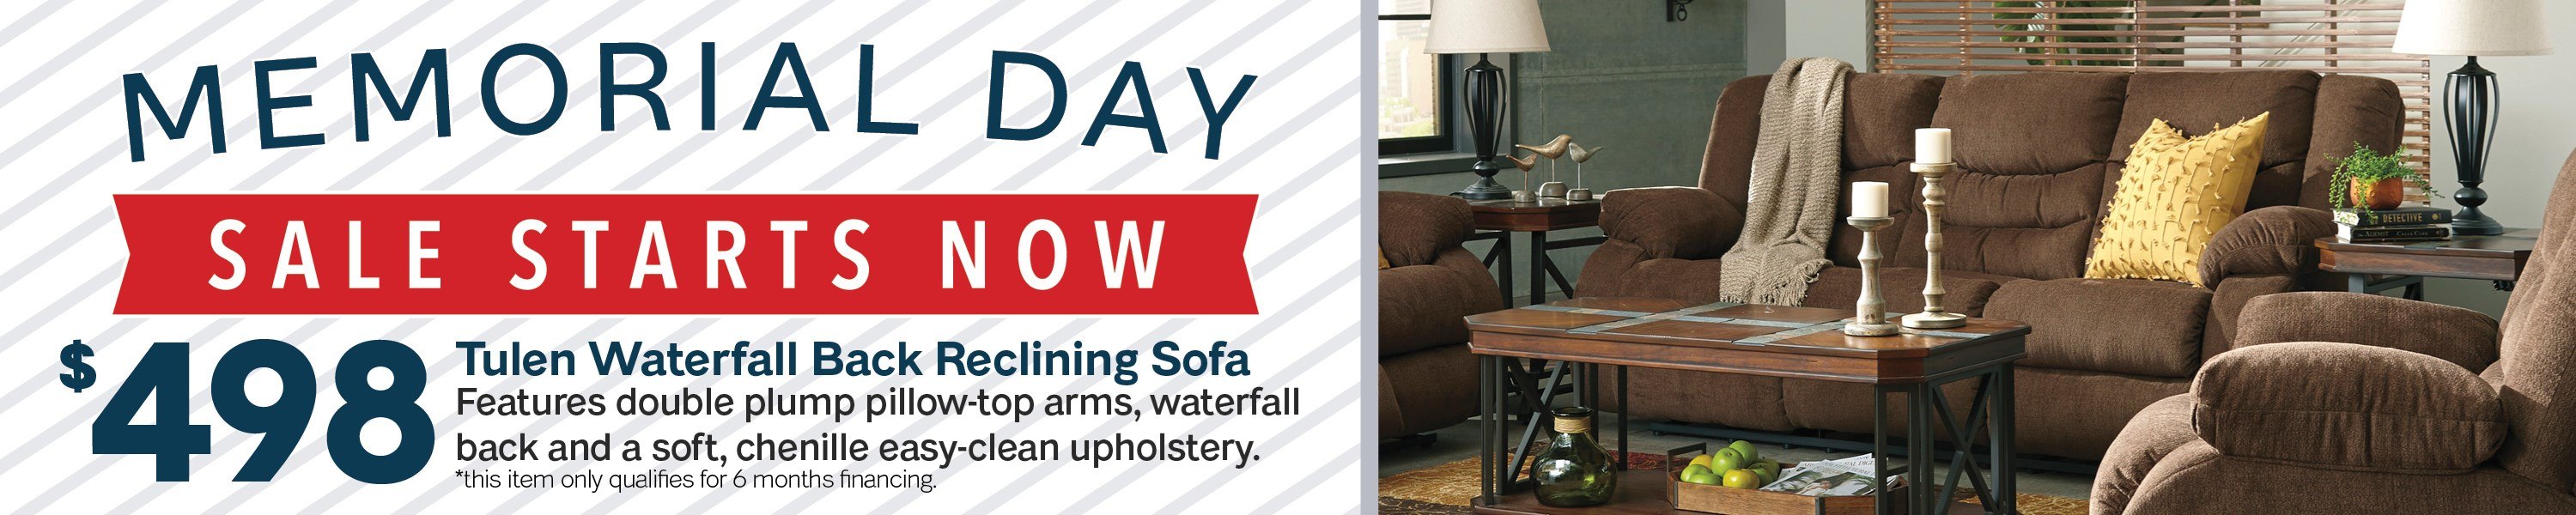 Furniture & ApplianceMart Memorial Day Sale on NOW